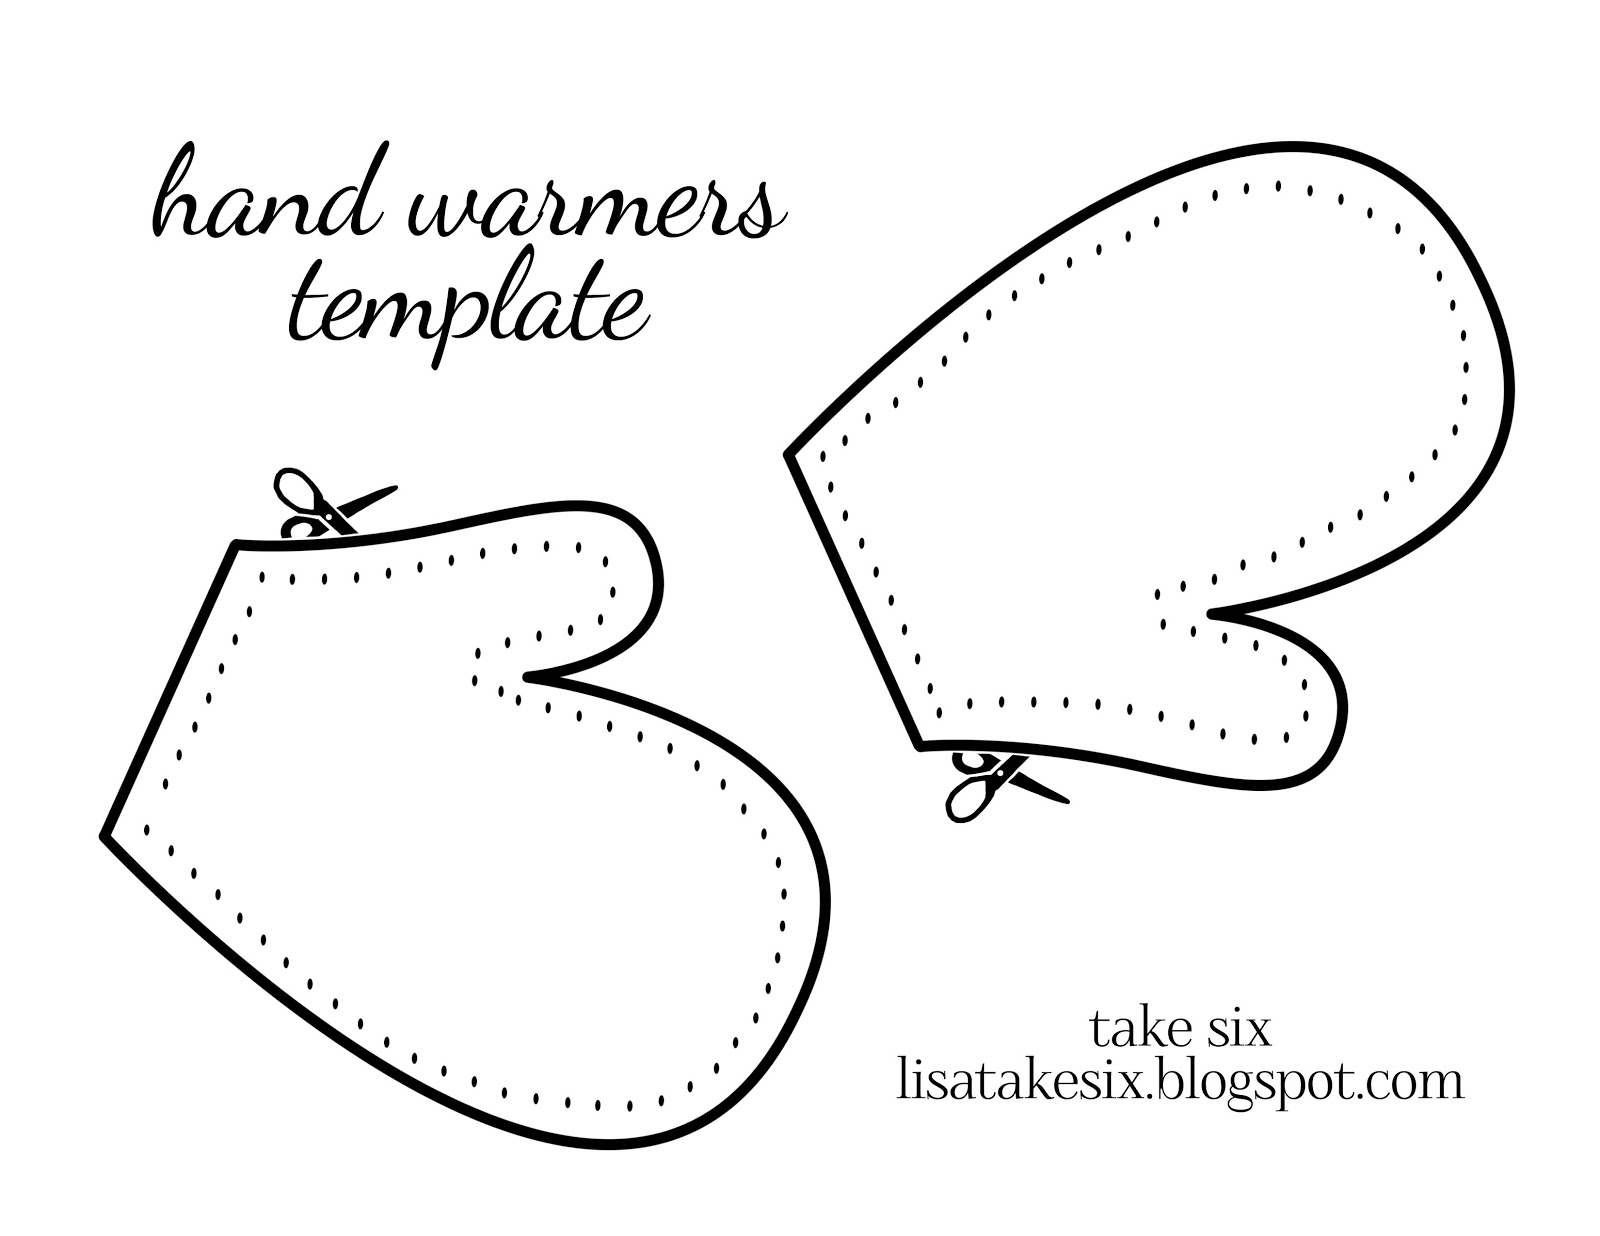 Take Six: Hand Warmers